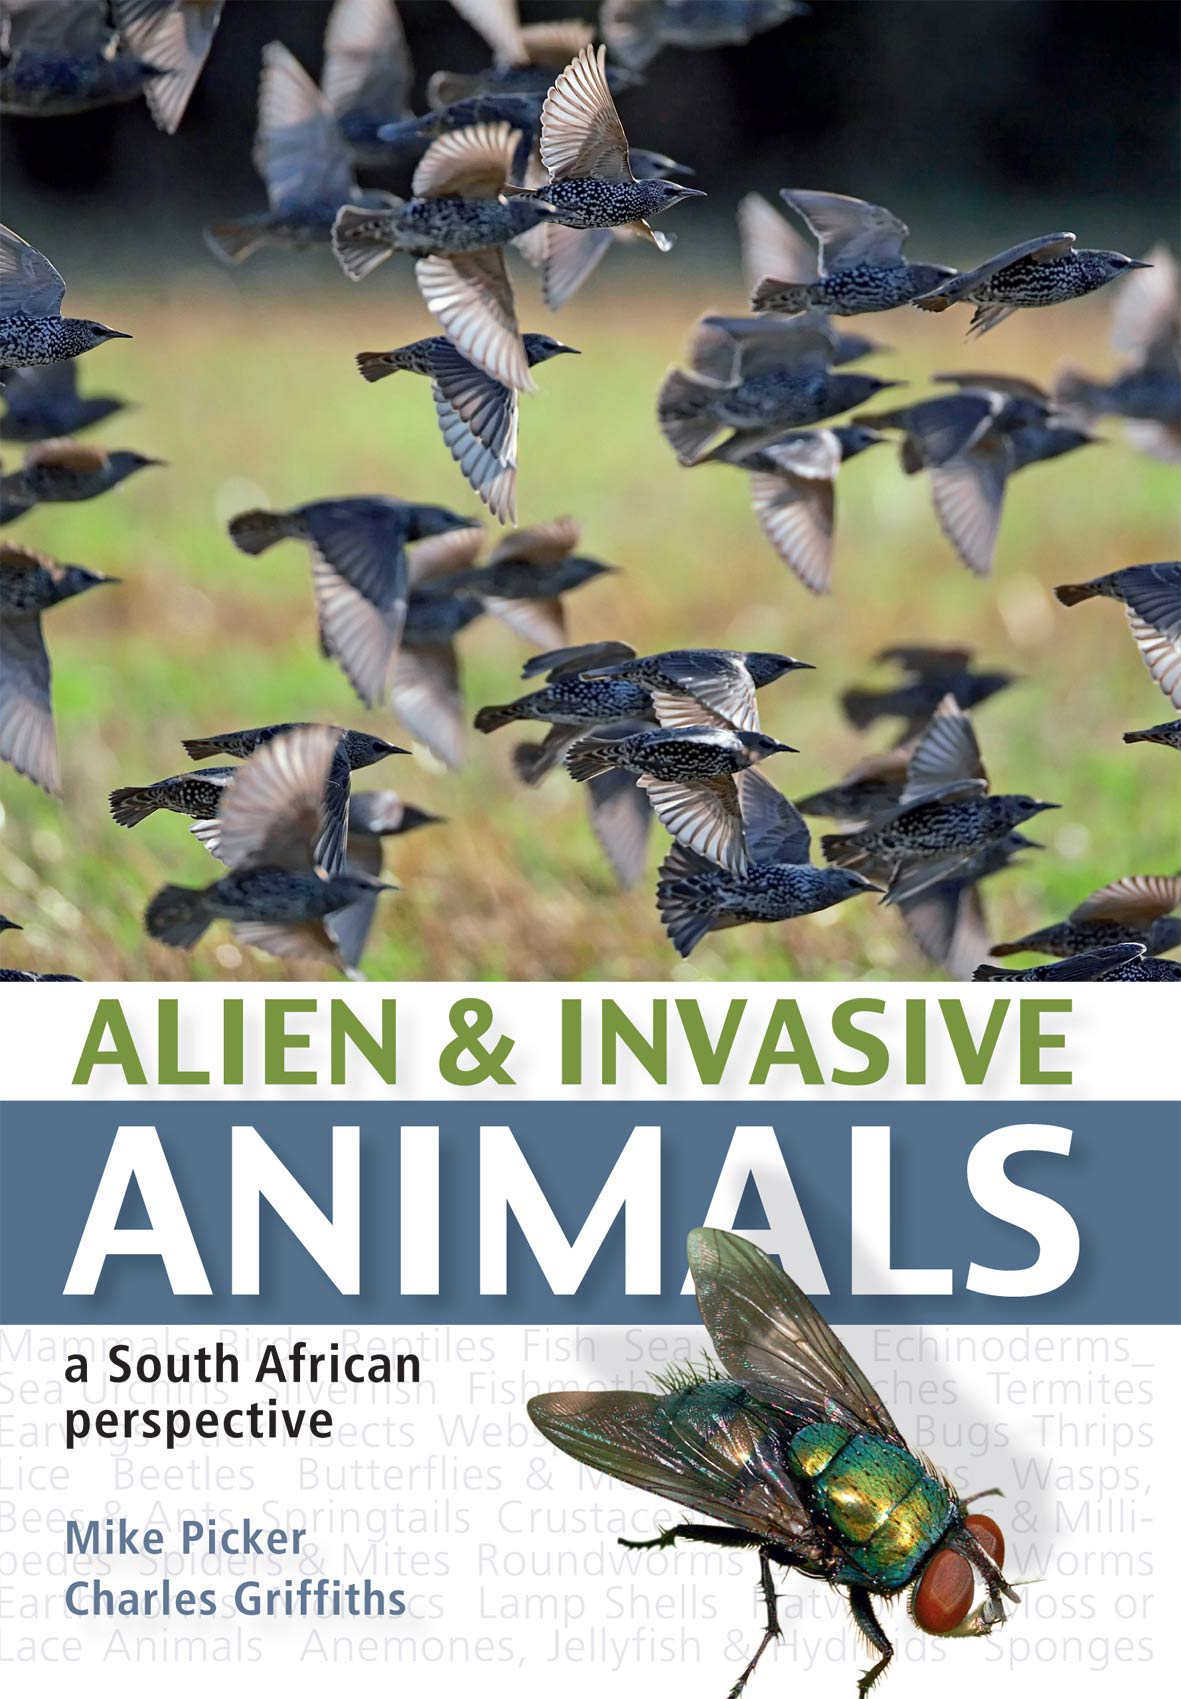 Alien & Invasive Animals: A South African Perspective